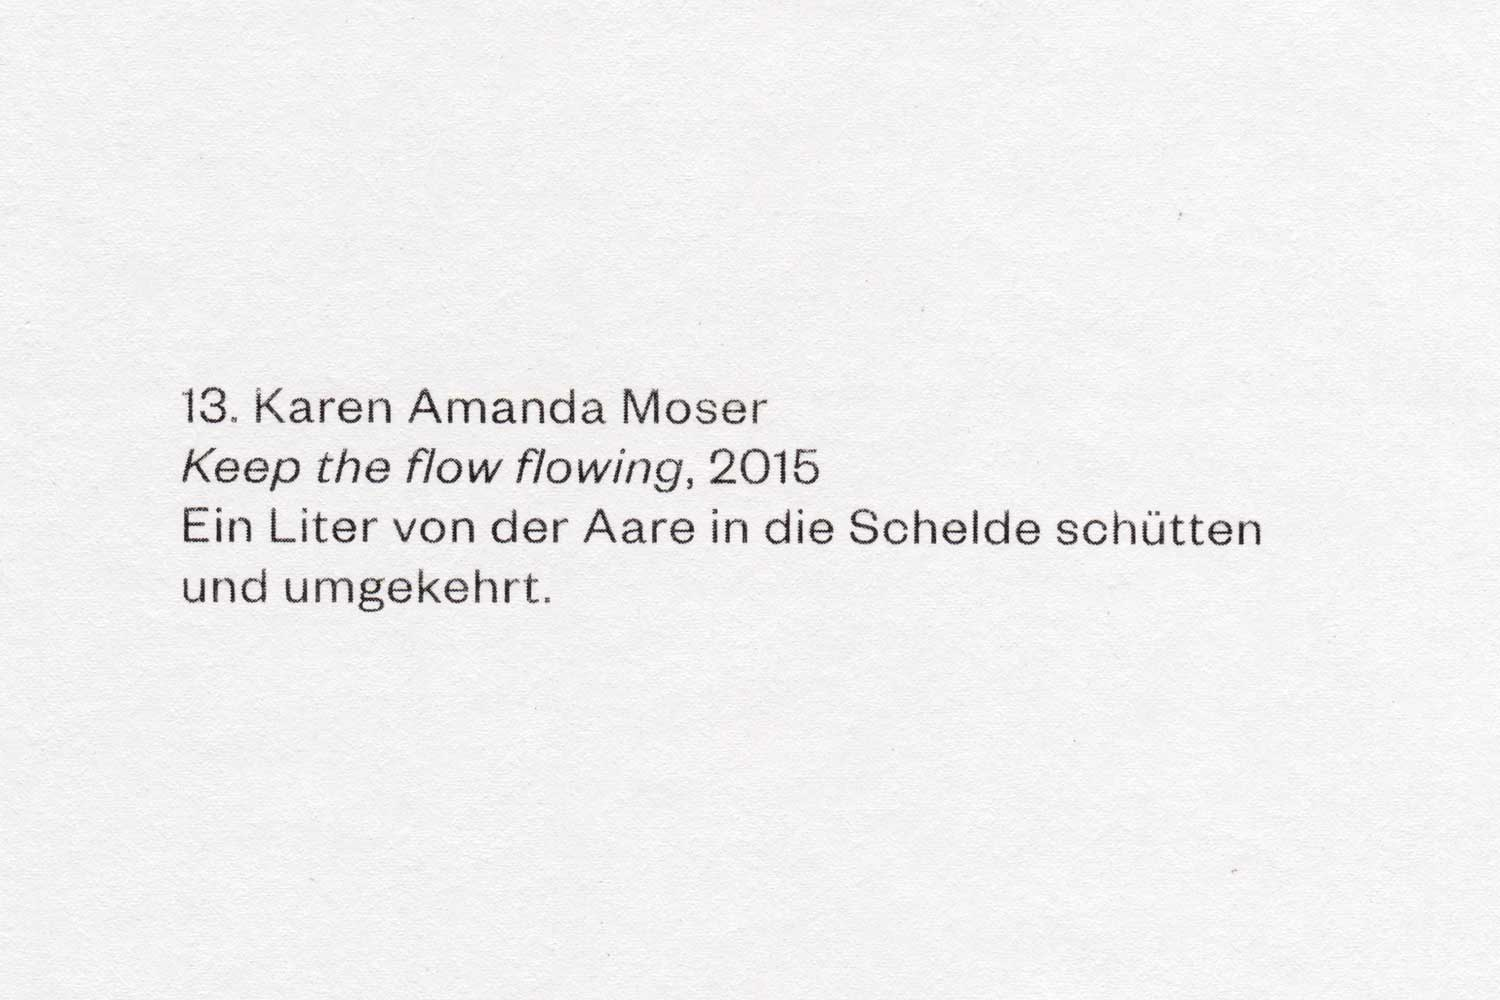 Keep the flow flowing, Karen Amanda Moser, 2015.